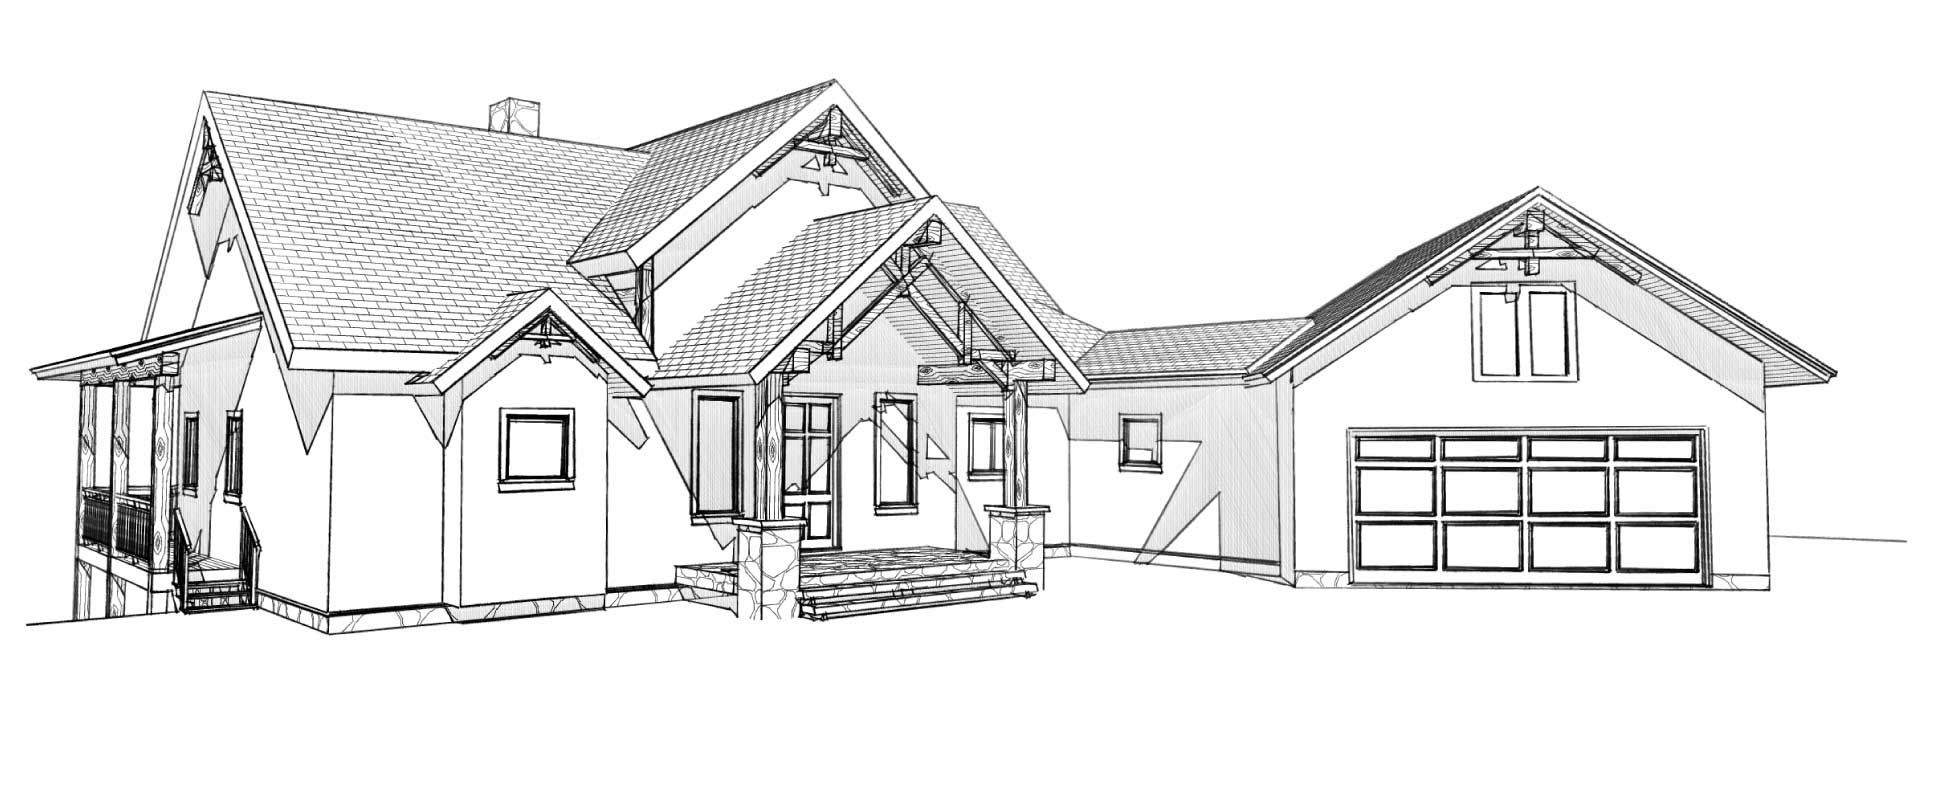 custom designed luxury log home columbine front left view